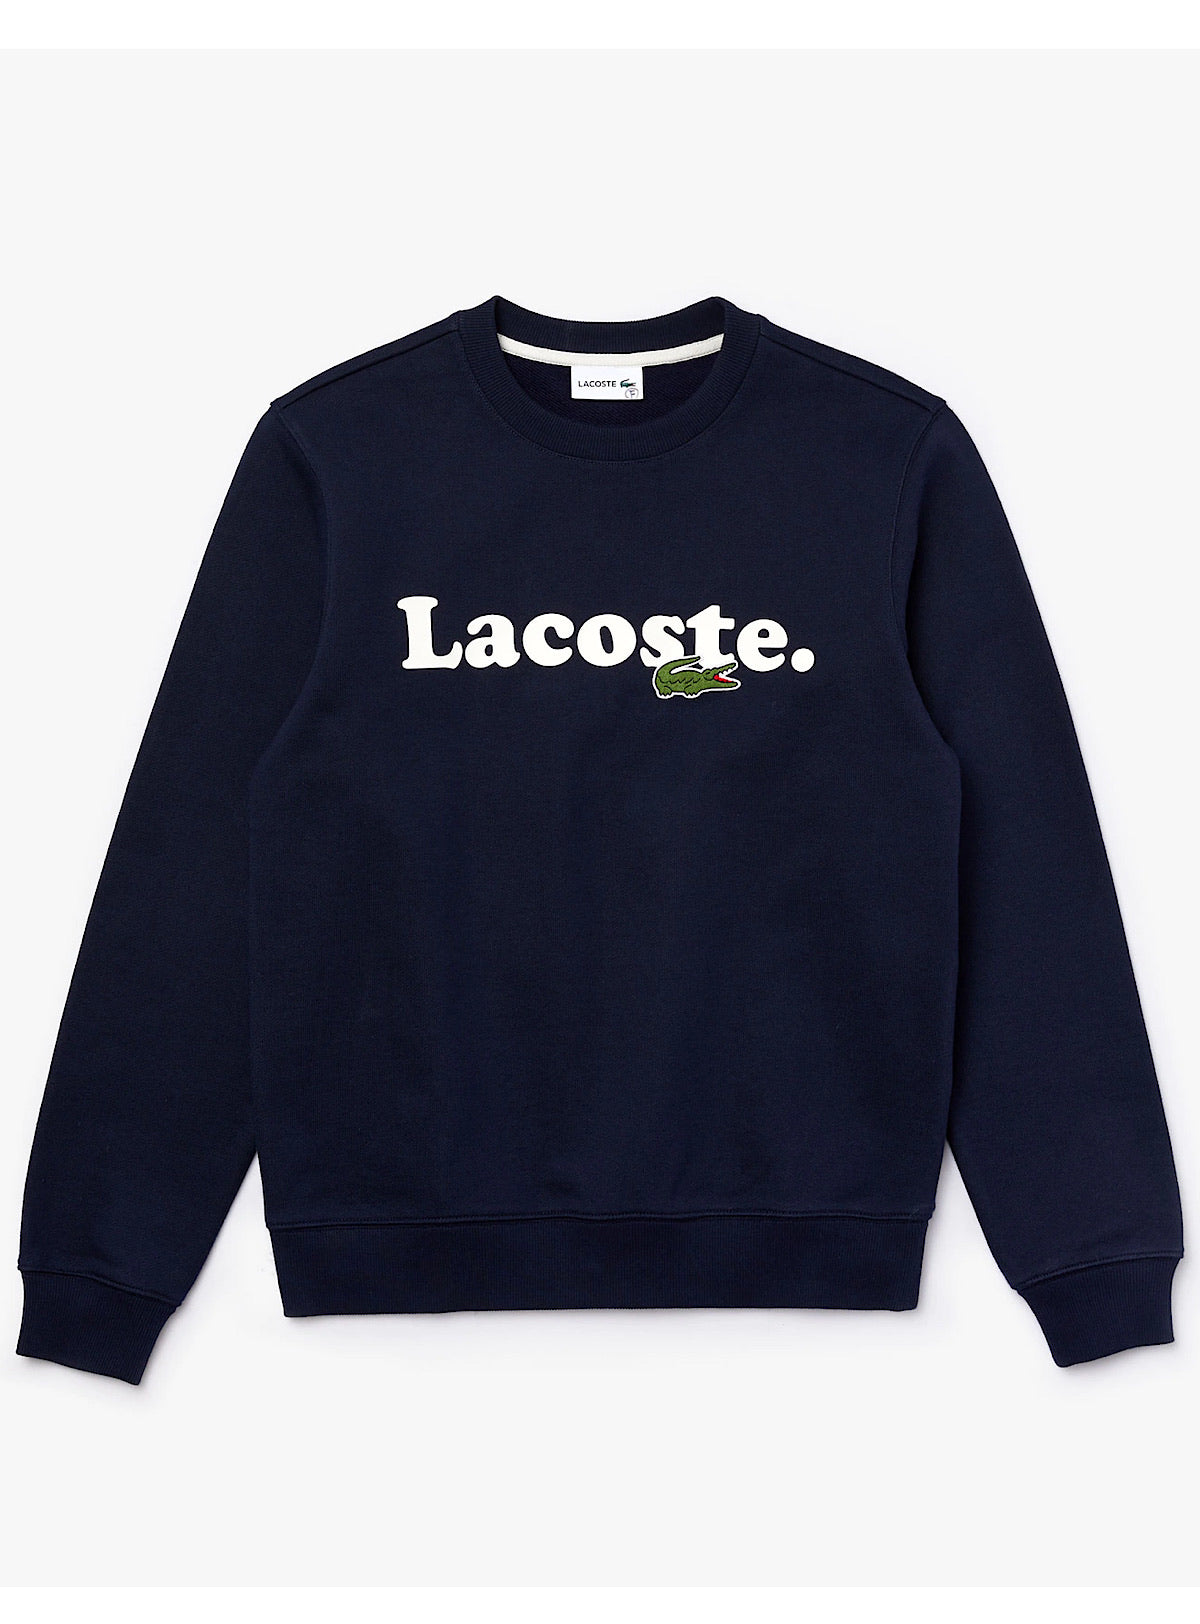 Lacoste Crewneck Sweater - Branded - Navy - SH2173